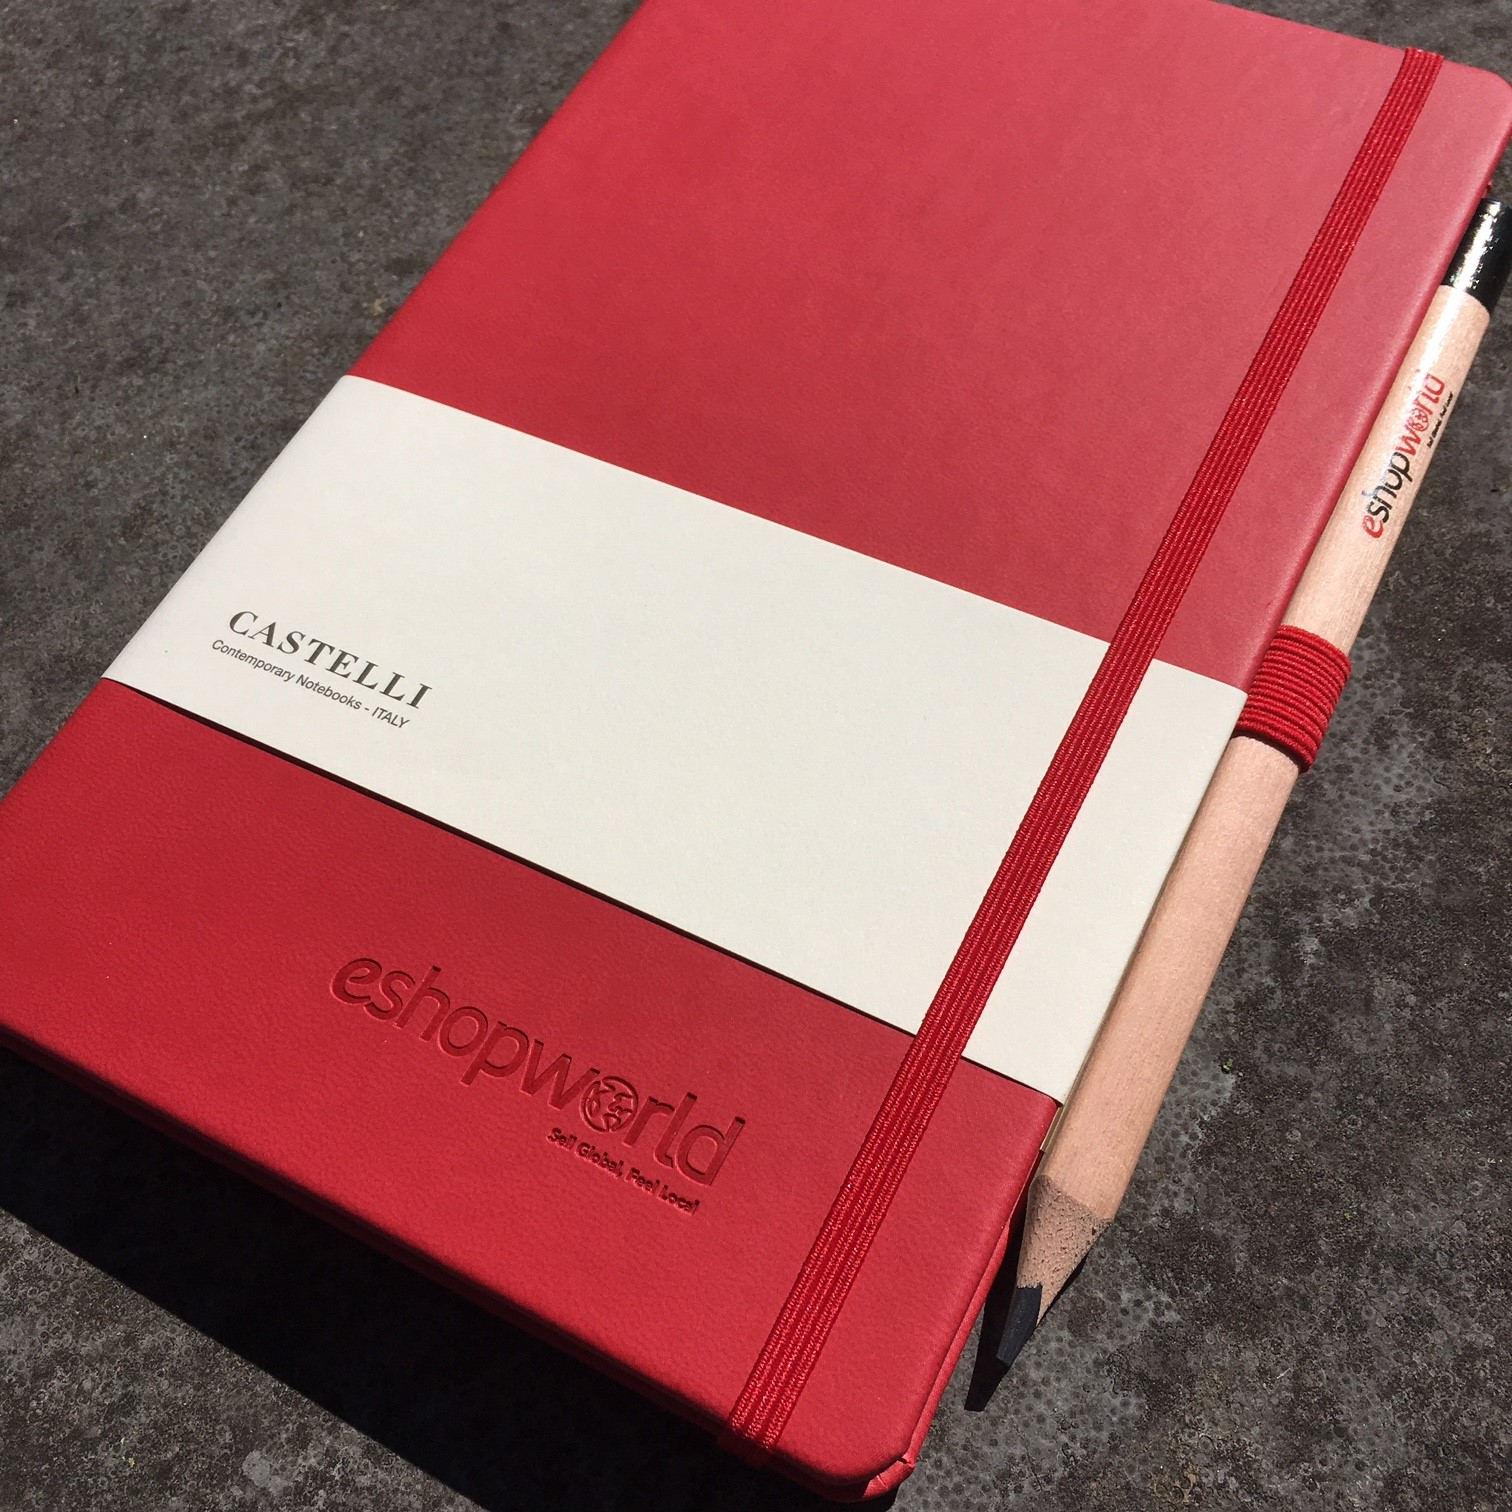 Castelli Soft Touch Rood met preeg The Notepad Factory